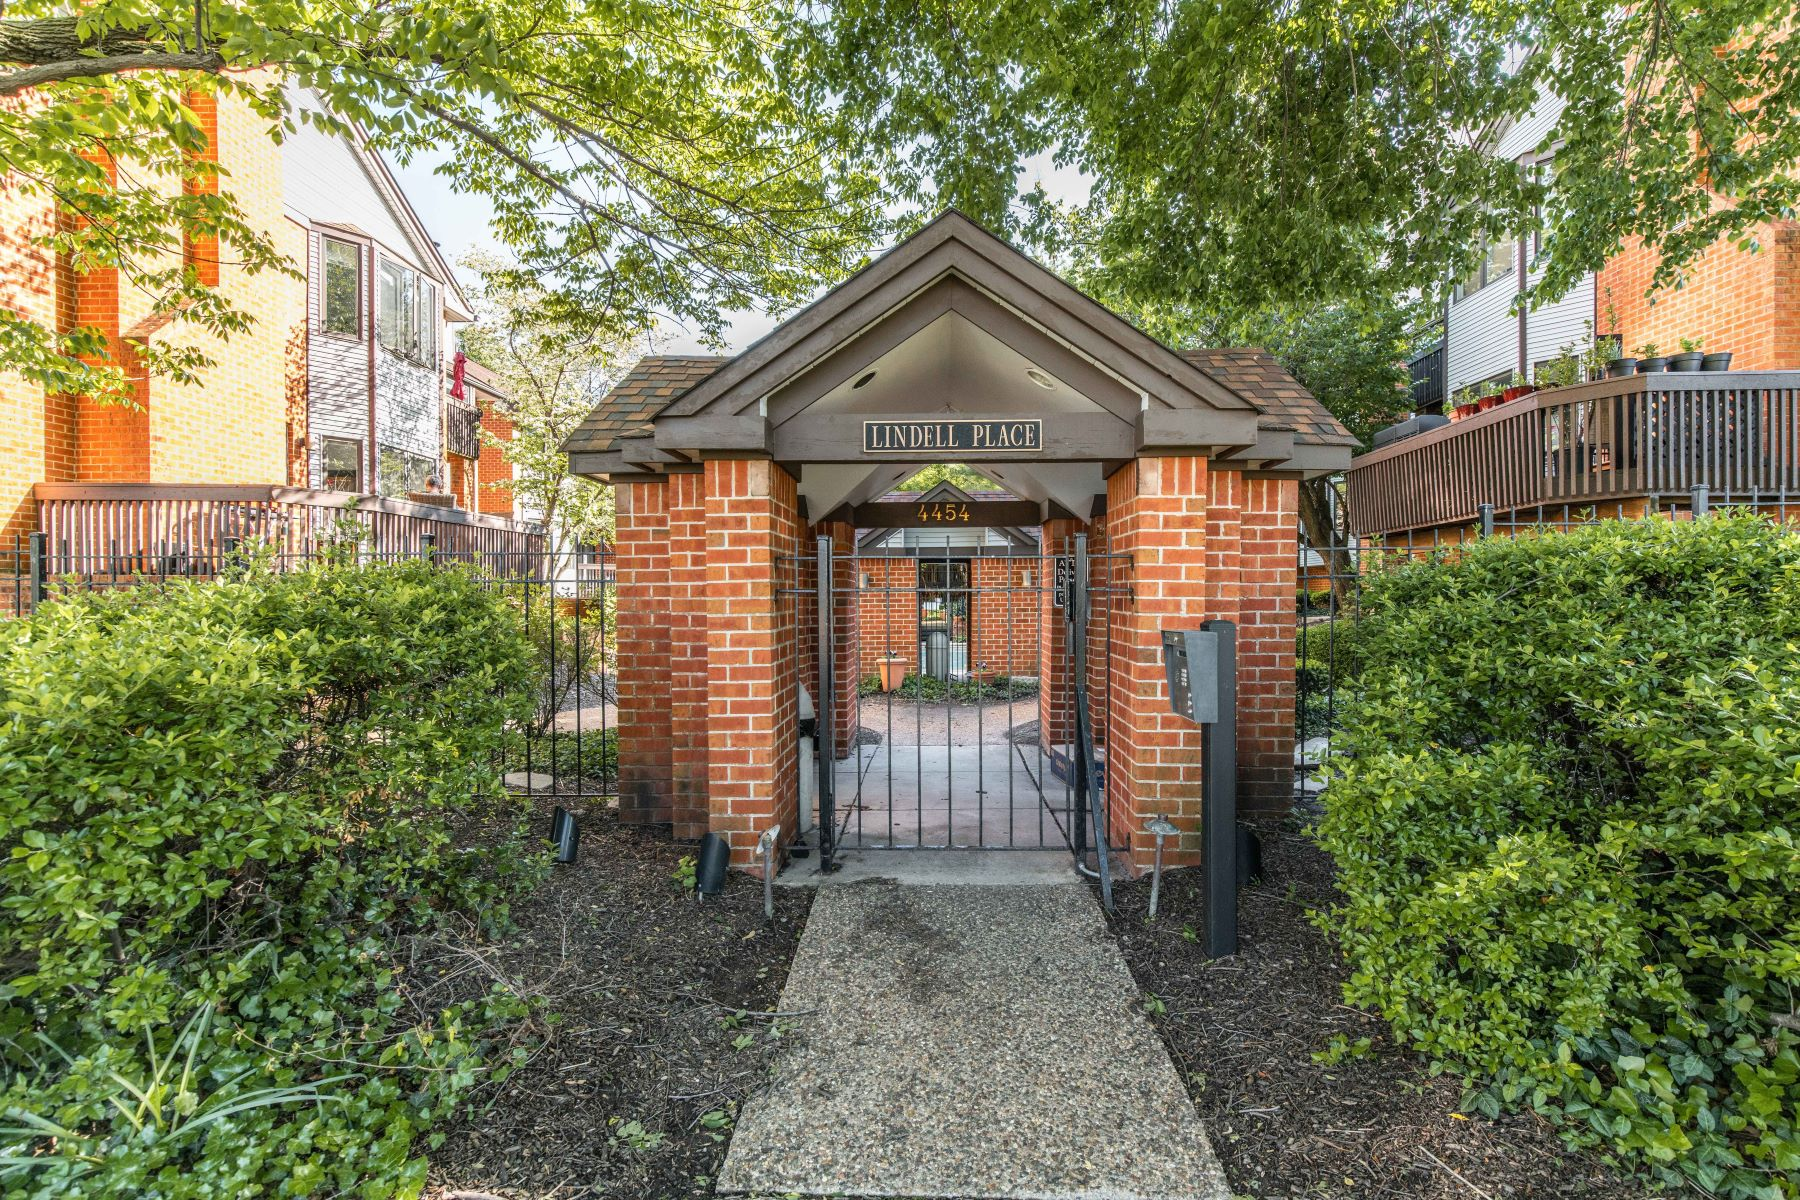 Property for Sale at 4454 Lindell Boulevard #32 St. Louis, Missouri 63108 United States